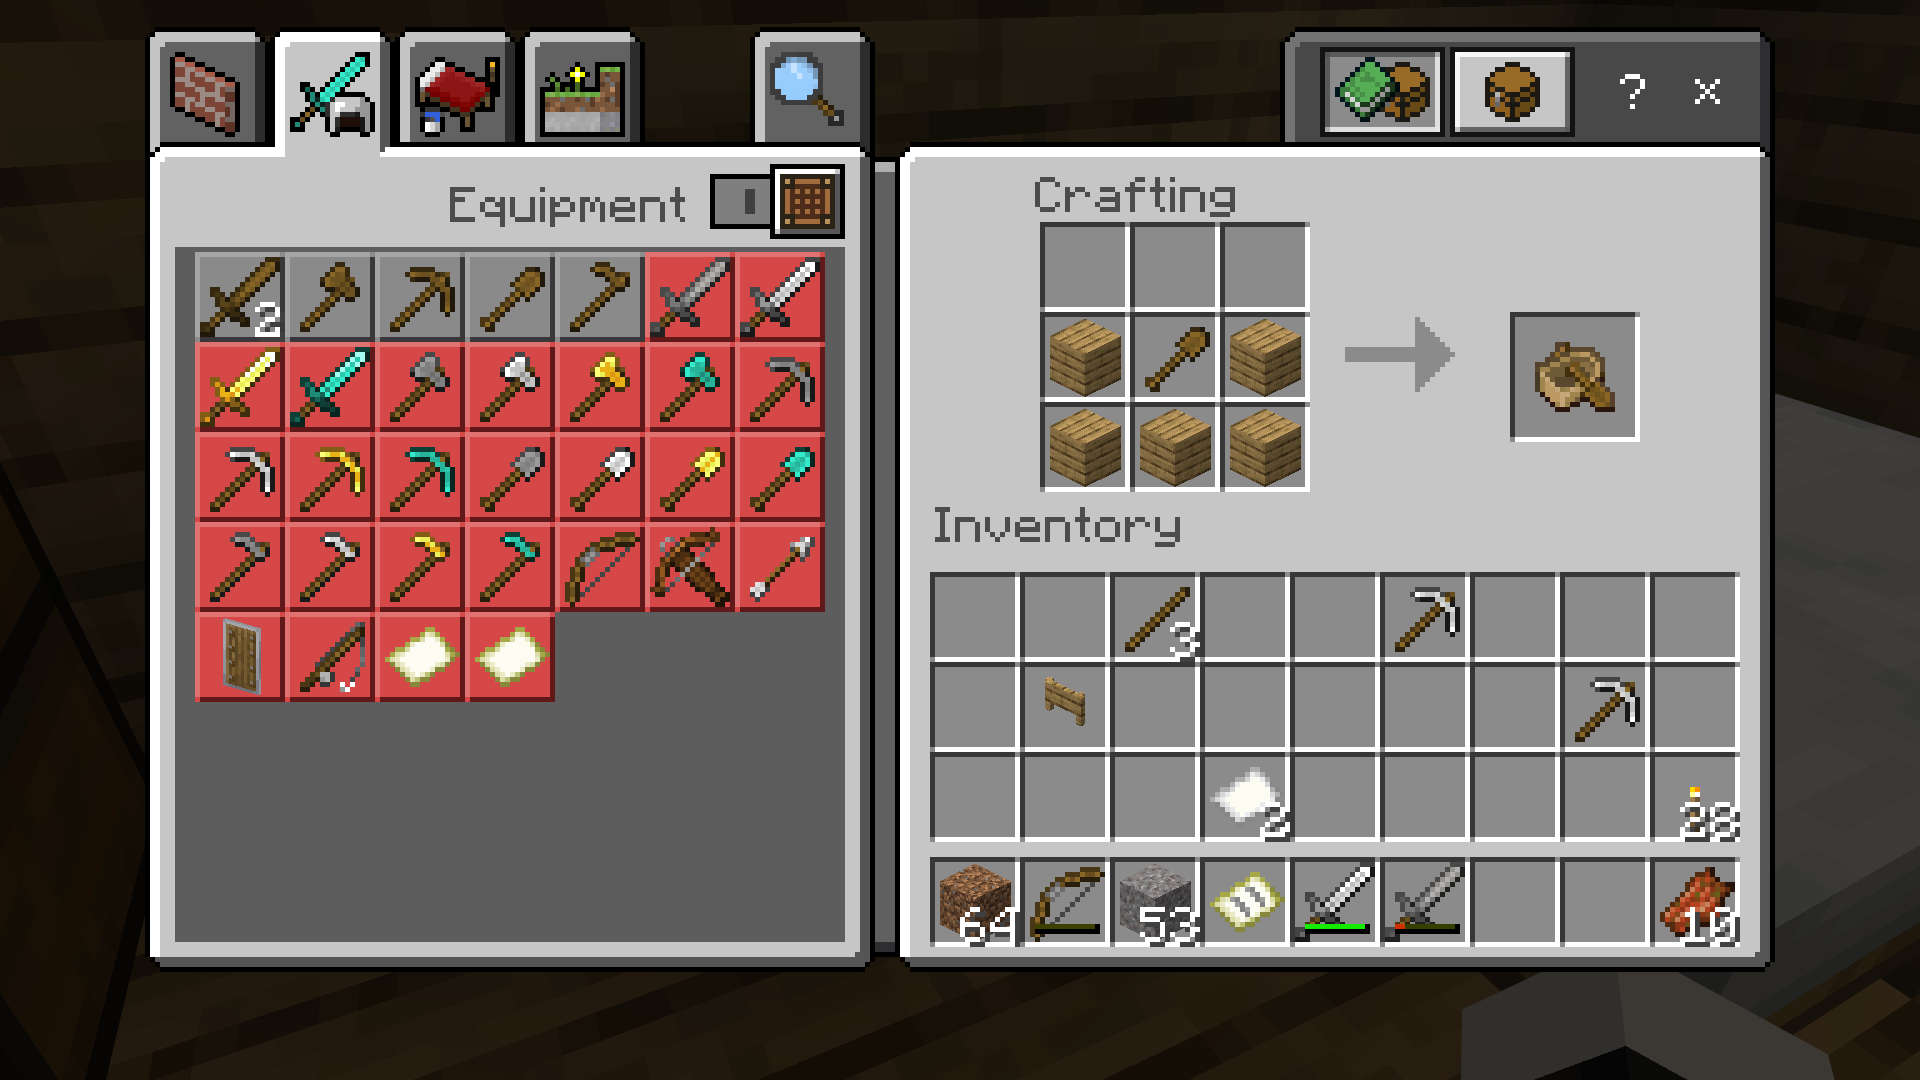 This is the boats recipe for Minecraft Bedrock edition. It